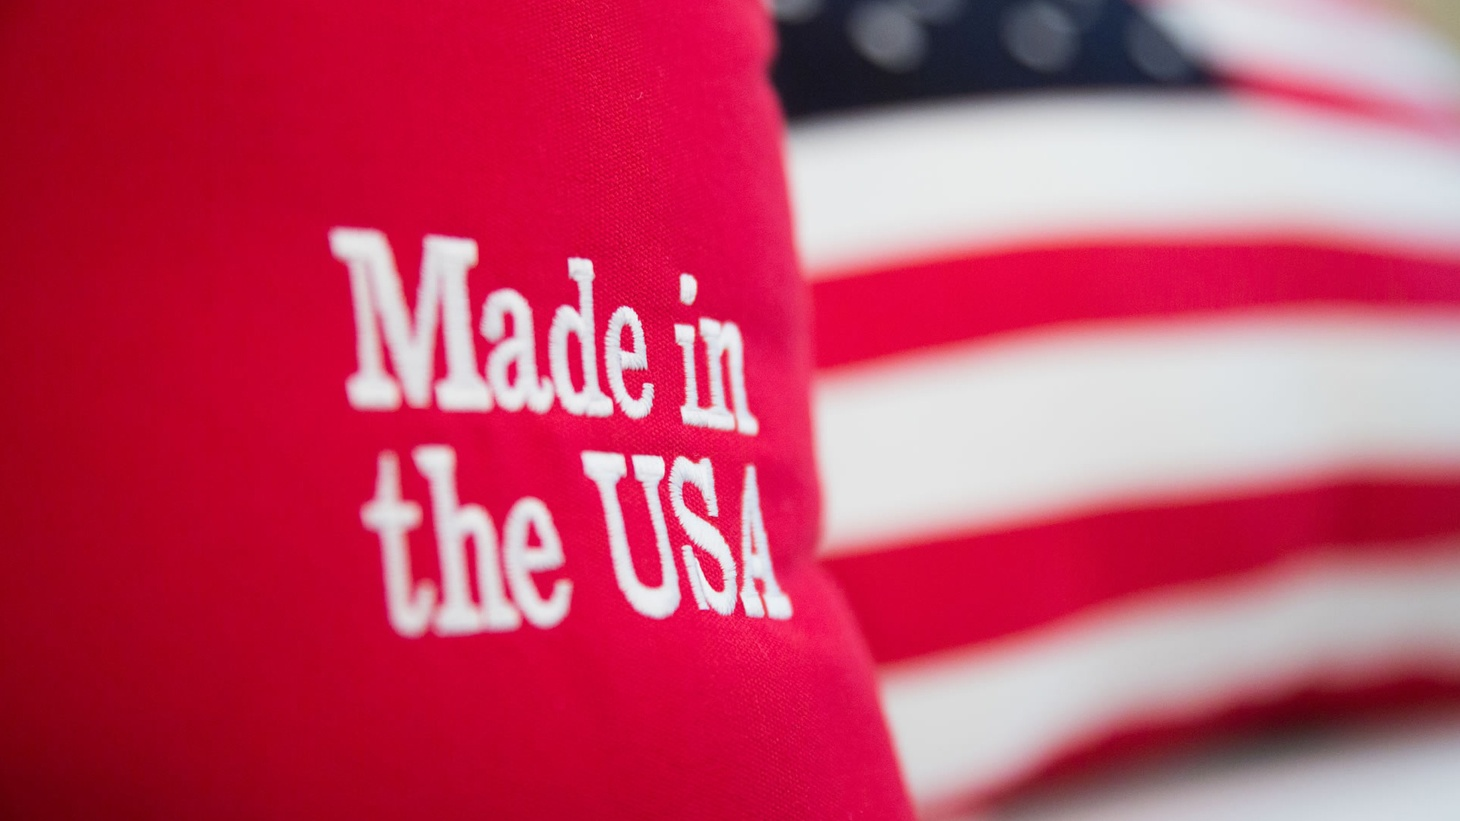 The White House has declared this 'Made in America' week, showcasing products made entirely in the country. But when we say something is 'made in America' the next question is where in America? Guest host León Krauze takes a tour of American capitalism in the digital era.